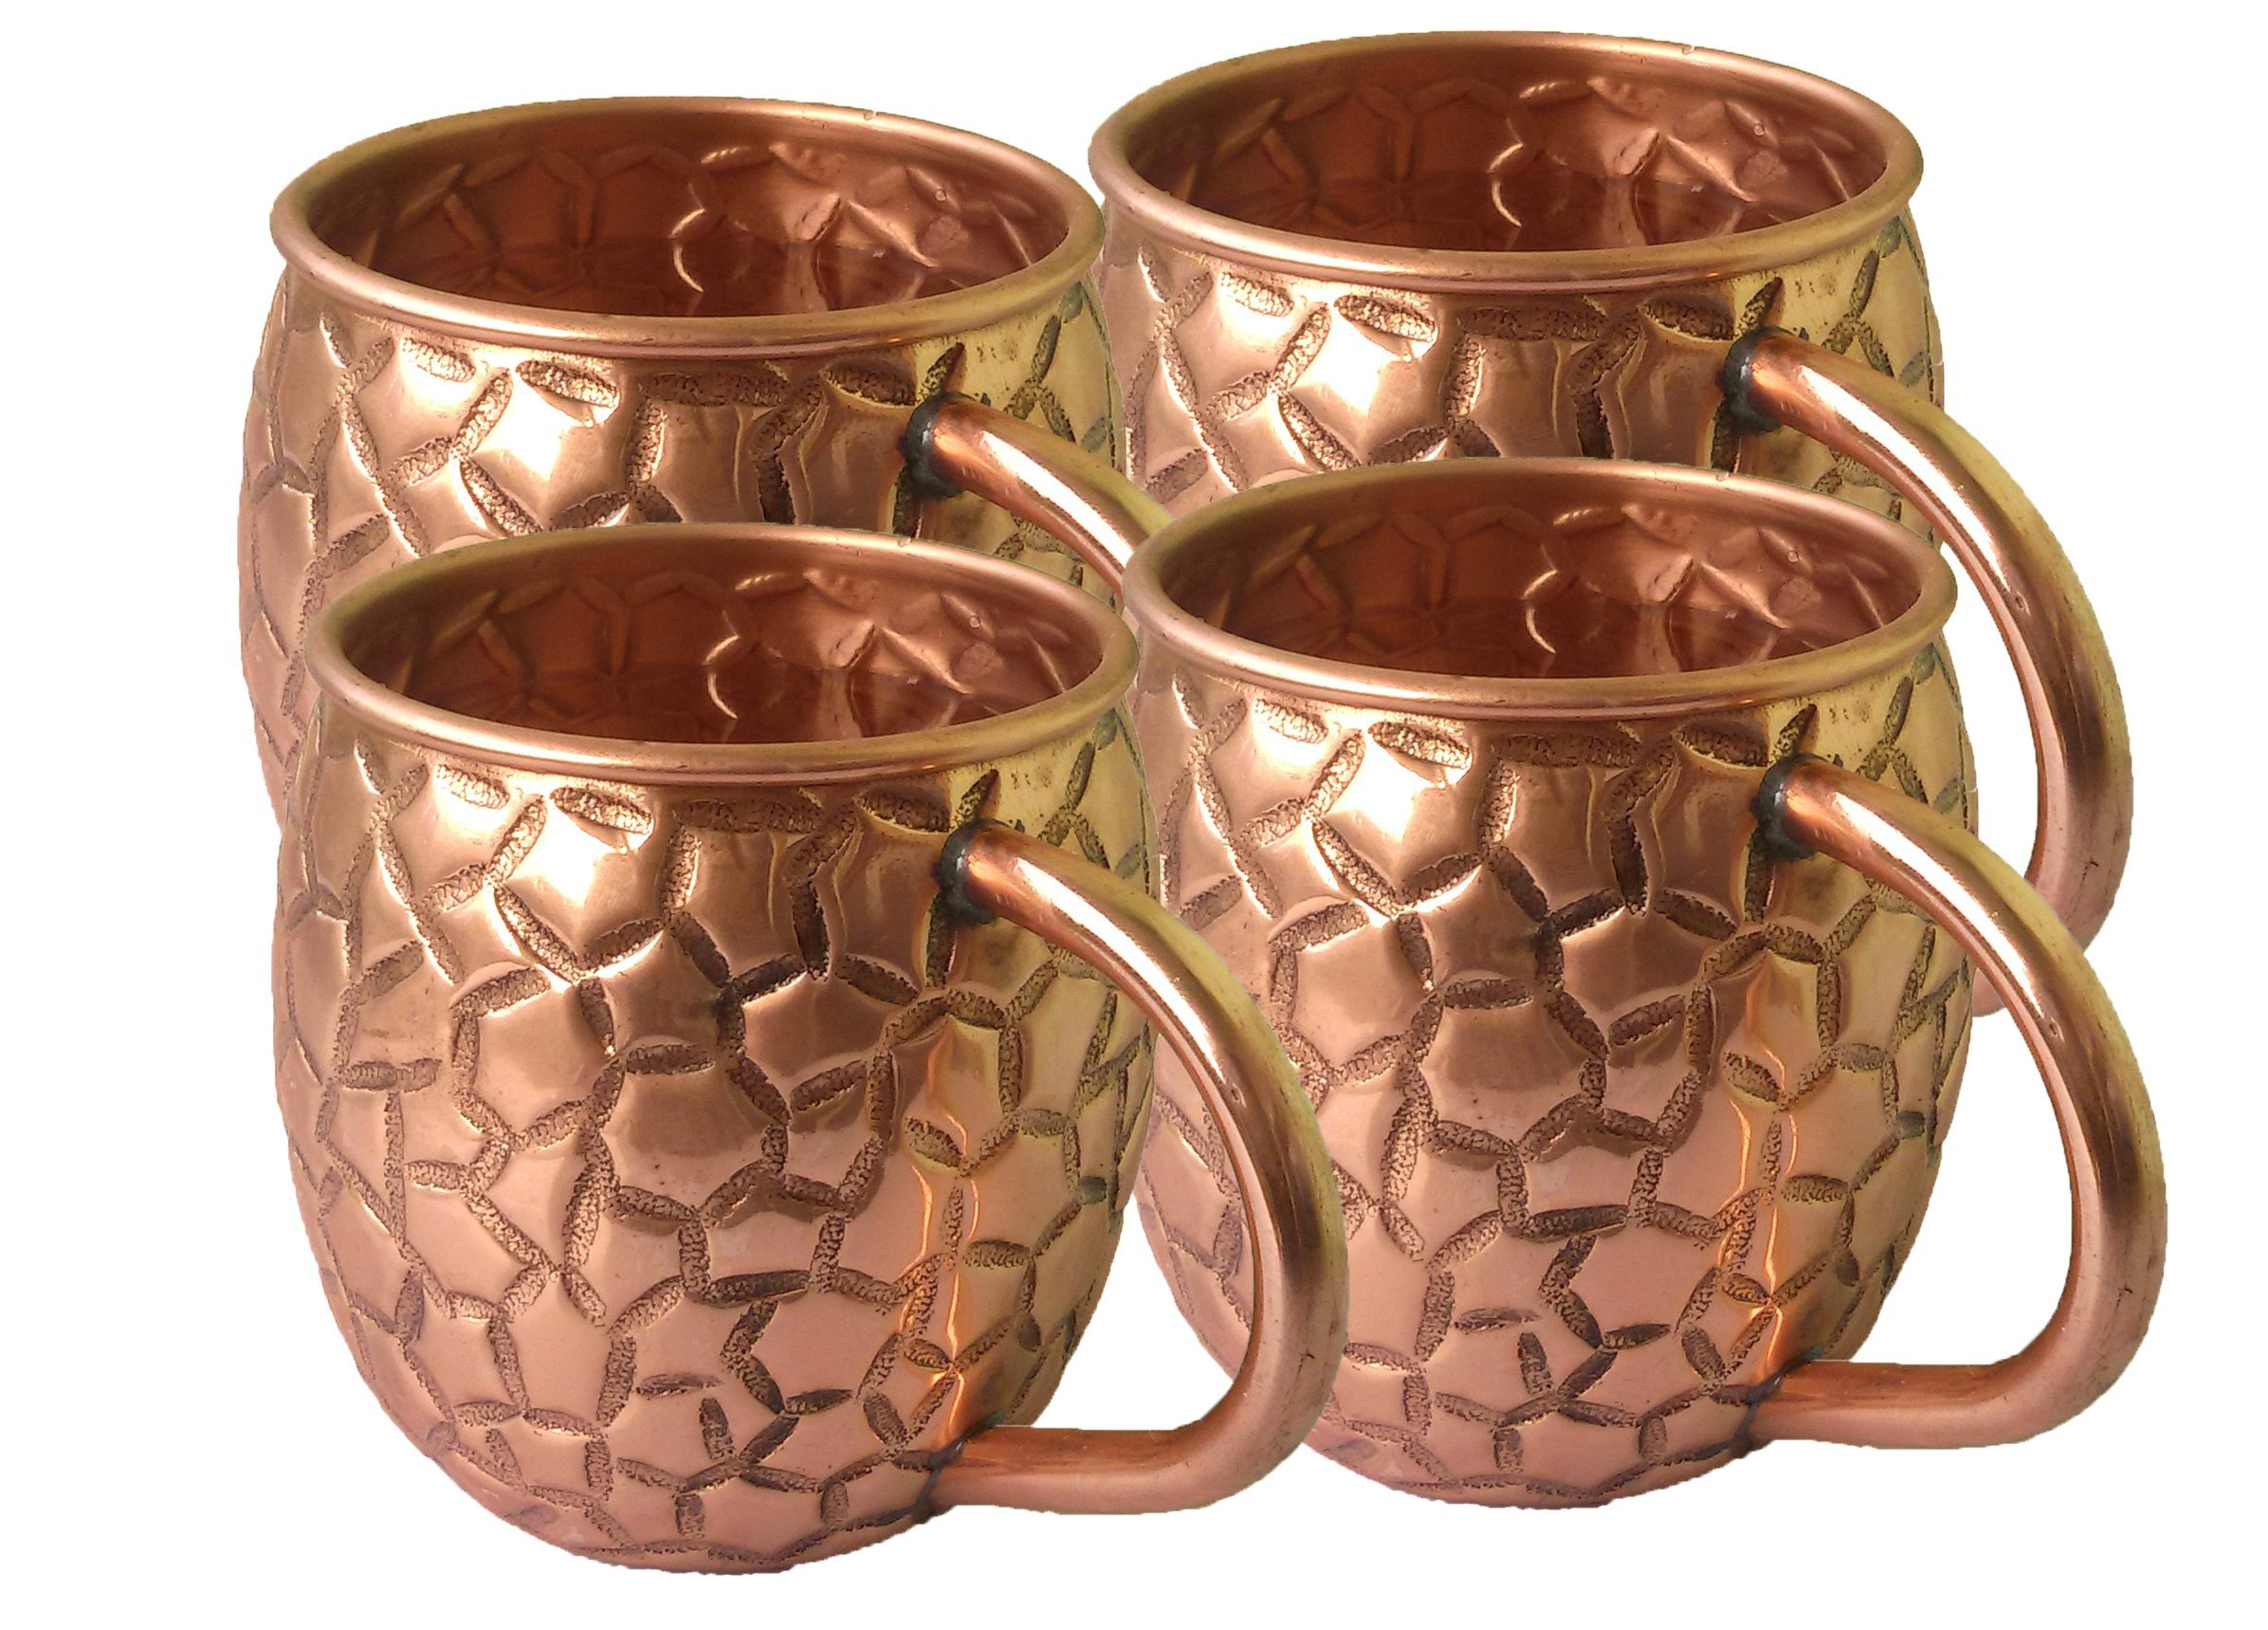 STREET CRAFT Copper Moscow Mule Mugs Capacity 16 Oz Authentic Moscow Mule Mugs, Hand Embossed with Beautifully Diamond Hammered Design and No Inner Lining Set of 4